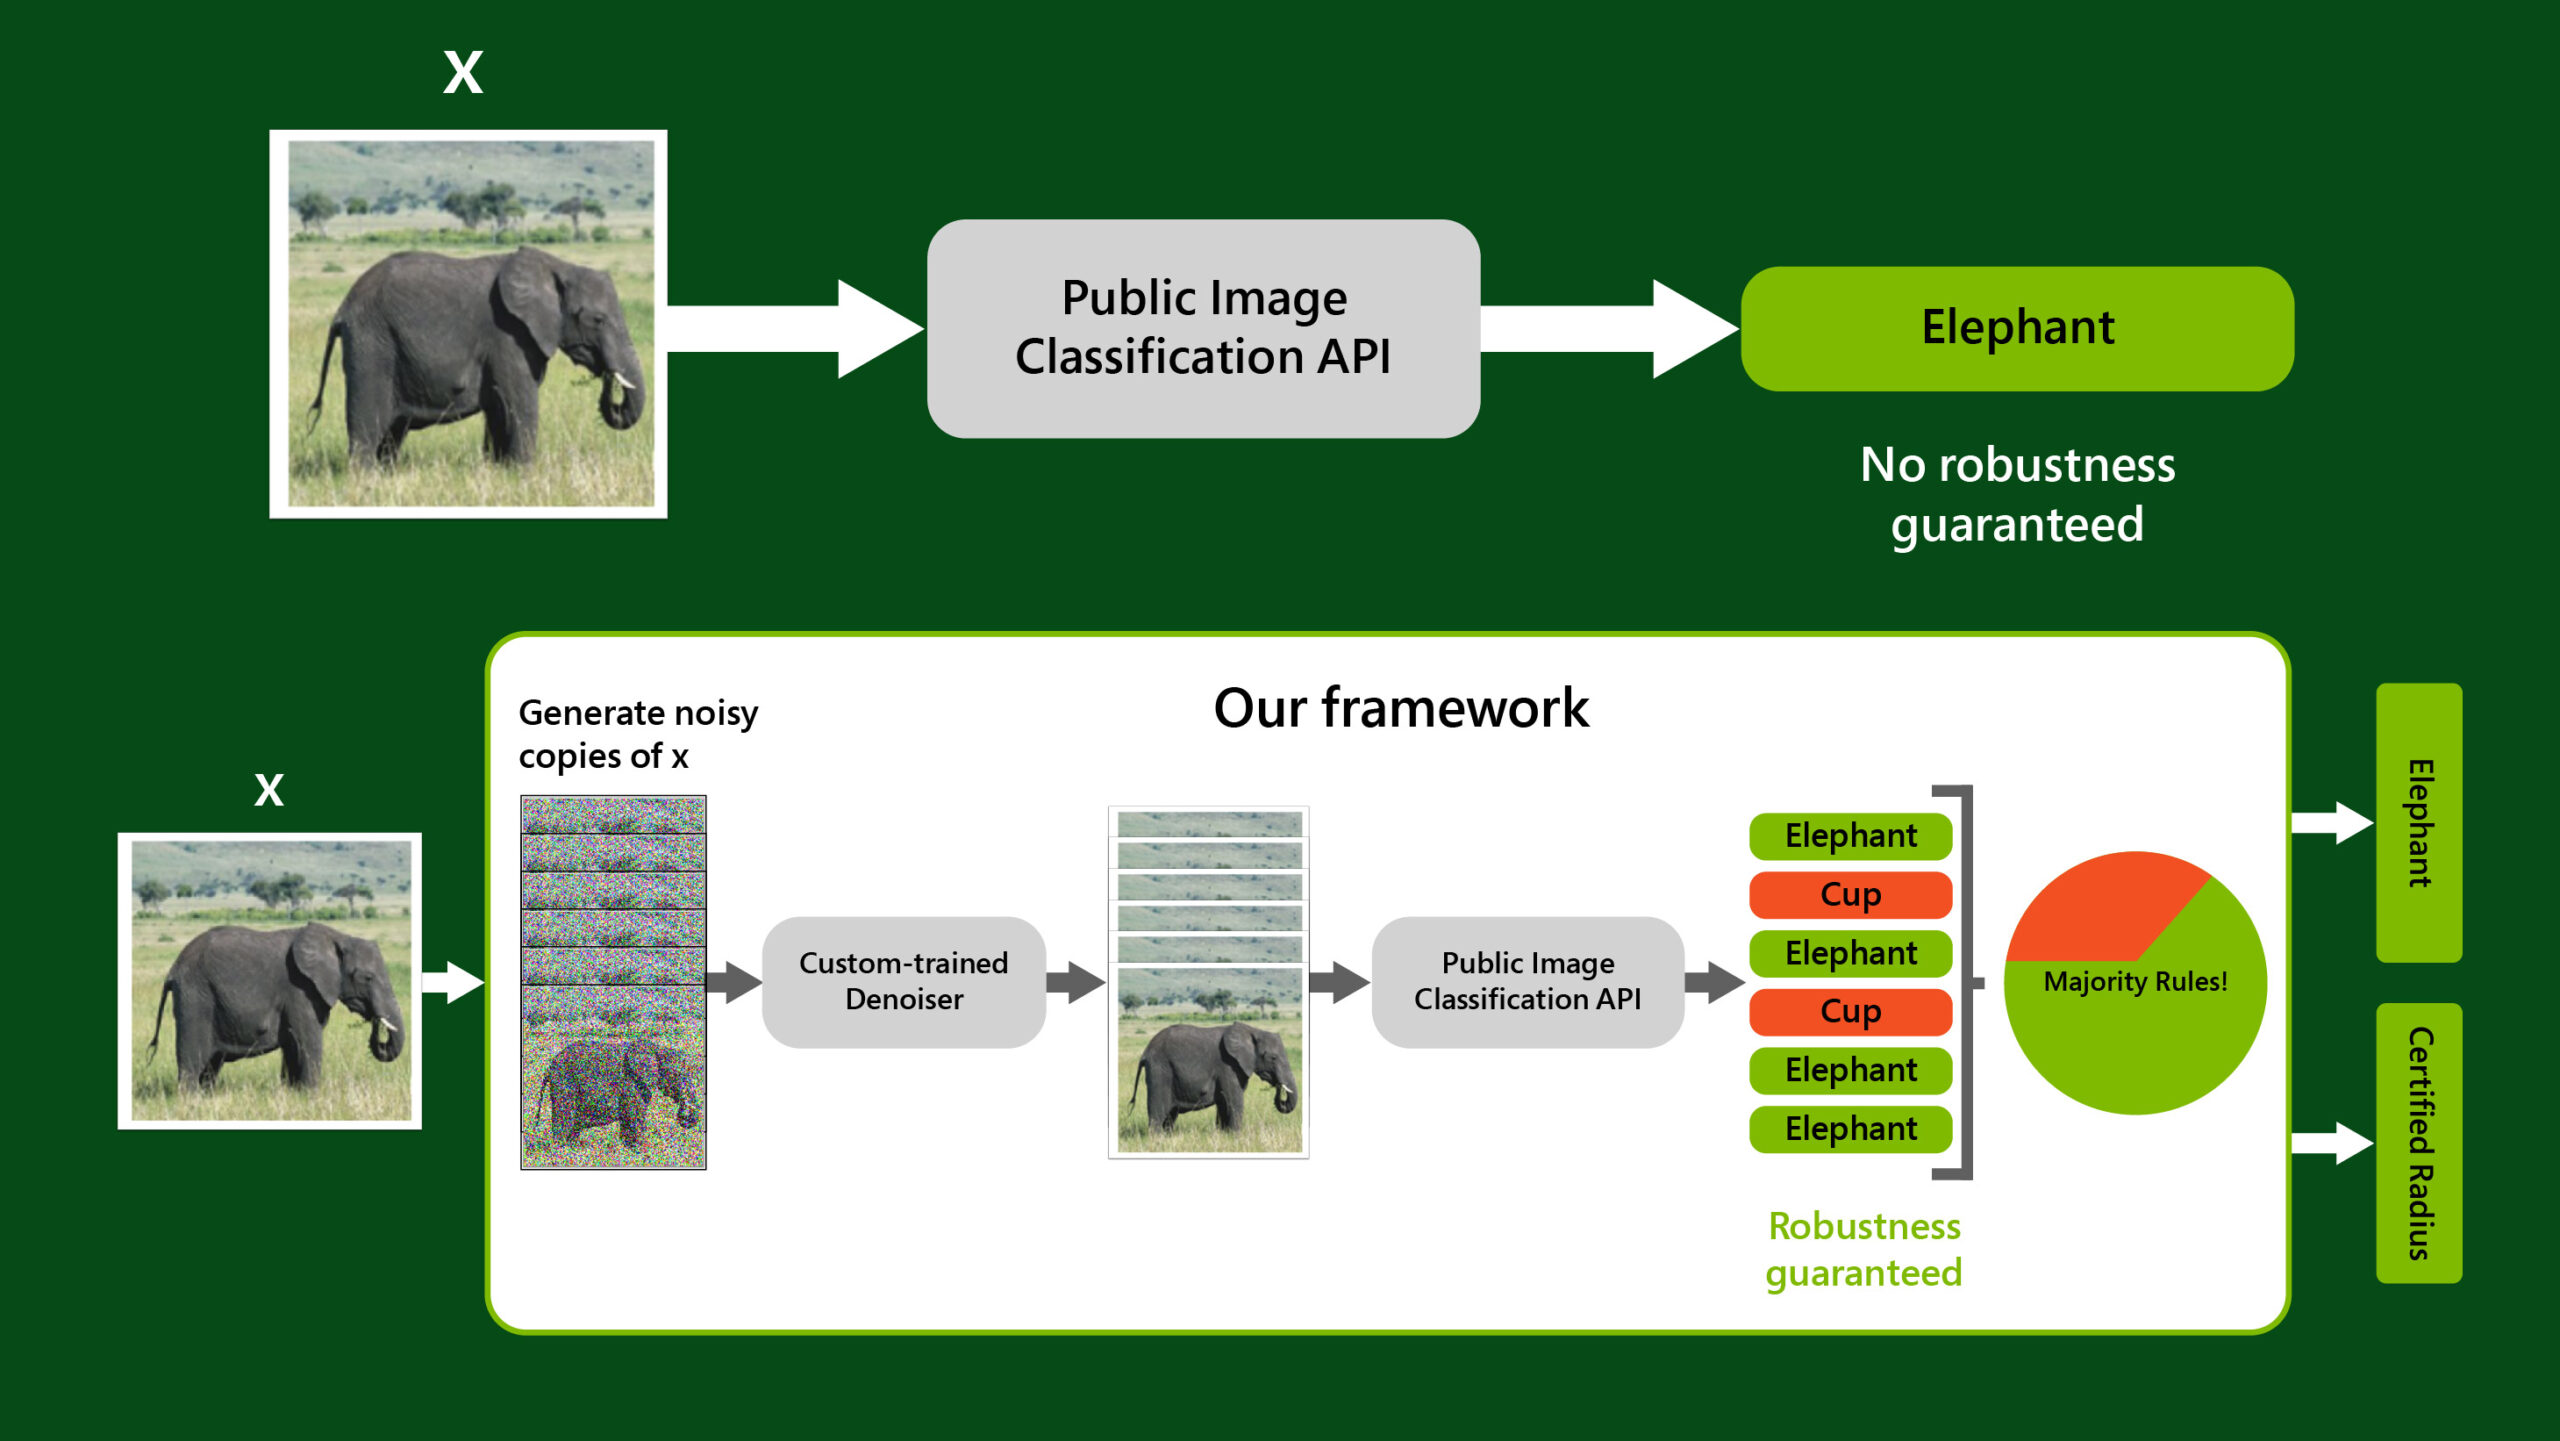 "An visual comparing public image classification APIs to the proposed denoised smoothing framework applied to a public image classification API. In the first sequence, an image of an elephant is input into a public image classification API, represented by an arrow leading to a gray square labeled as such. An arrow from the square points to a correct prediction of elephant, enclosed in a green square, with the words ""no robustness guaranteed"" under it. In the second sequence, an arrow points from an image of an elephant to six noisy copies of the image. An arrow then points from the copies to a square labeled ""Custom-trained Denoiser,"" which outputs six clean versions of the images. An arrow points from the clean copies to a square labeled ""Public Image Classification API."" The classifier provides predictions for each copy, of which four correctly identify their respective images as elephant. Adjacent to the predictions is a pie chart labeled ""Majority Rules!"" with one-third of the pie in red and two-thirds in green. Arrows point to the output of the process: a final prediction of elephant, enclosed in a green square, and a strong robustness guarantee, denoted by the words ""certified radius"" enclosed in a green square."